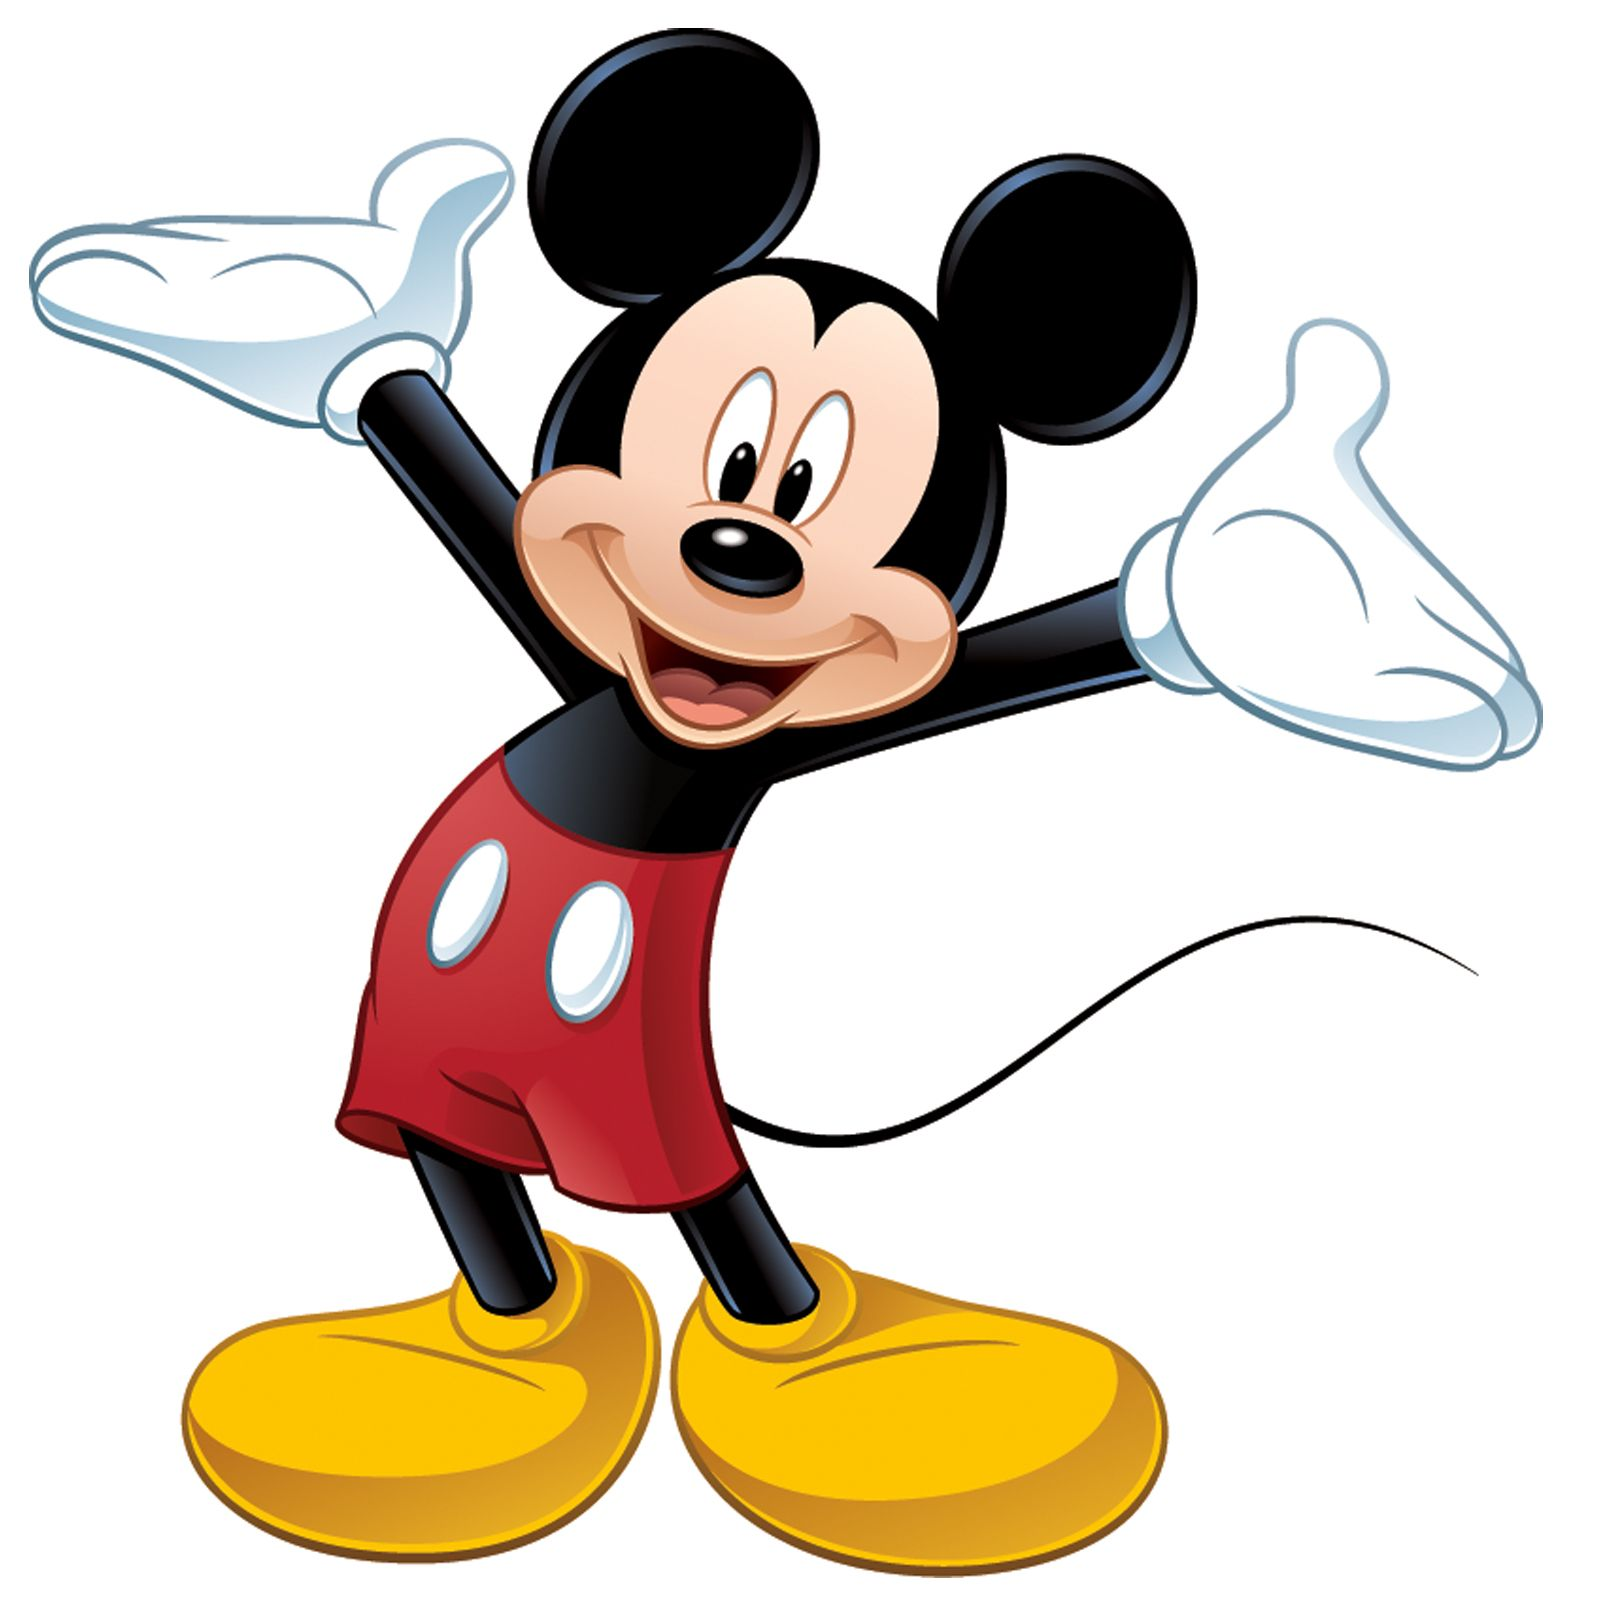 disney mickey mouse giant wall decal mickey mouse clipart disney mickey mouse giant wall decal